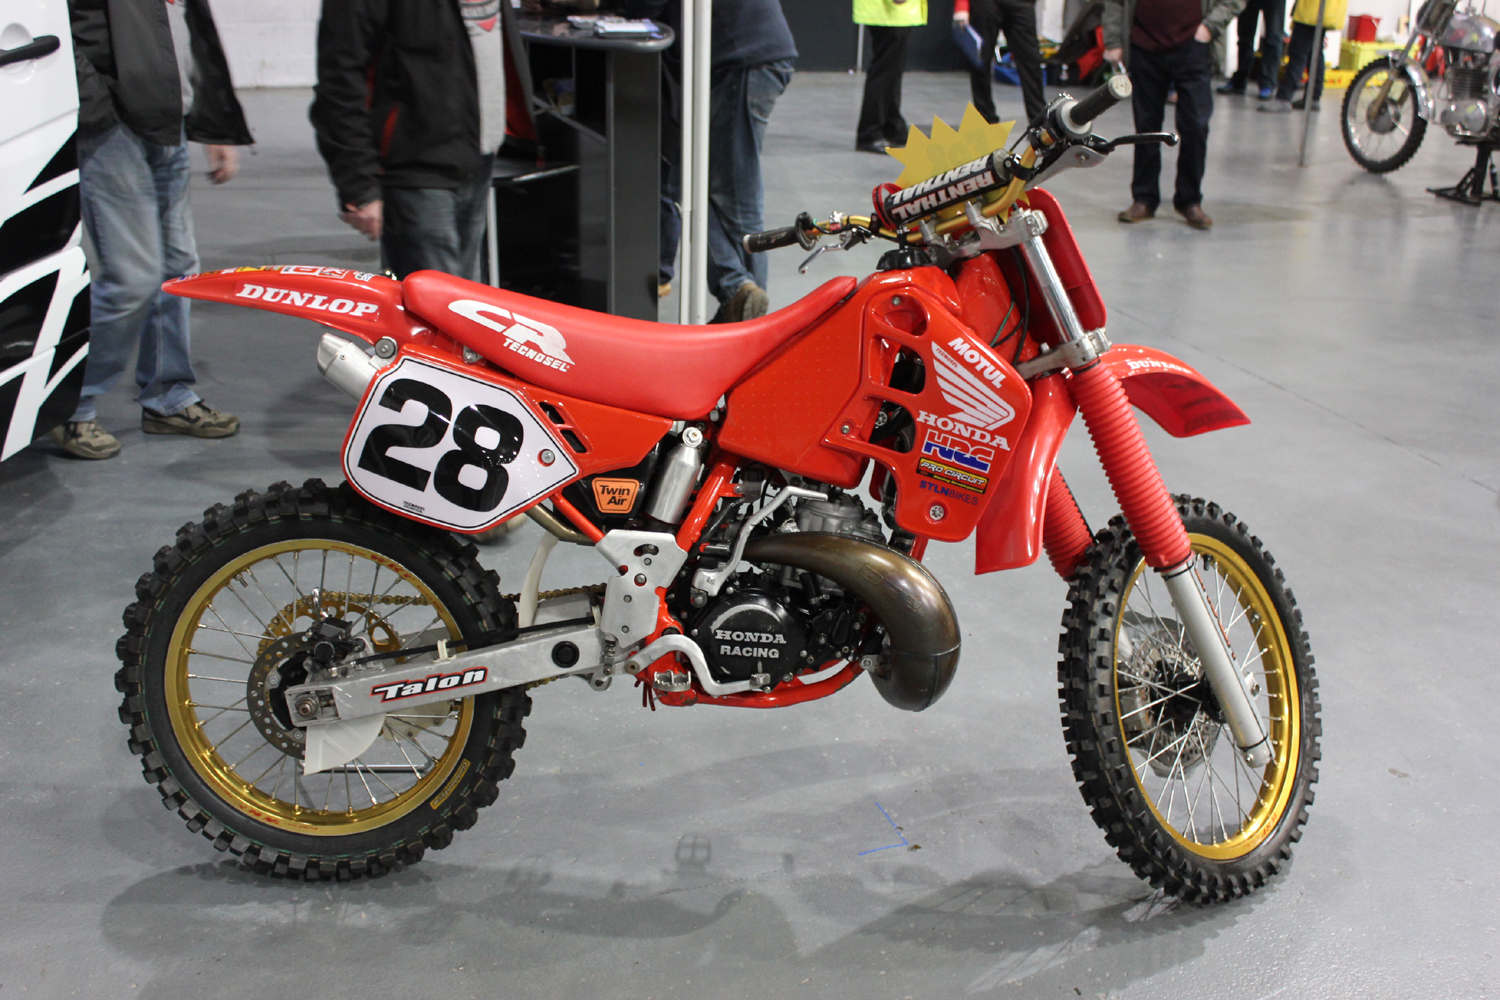 classicdirtbikerider.com-photo by Mr J-2015 Telford classic dirt bike show-1989 HONDA CR250 EVO BIKE FOR SALE £3250-